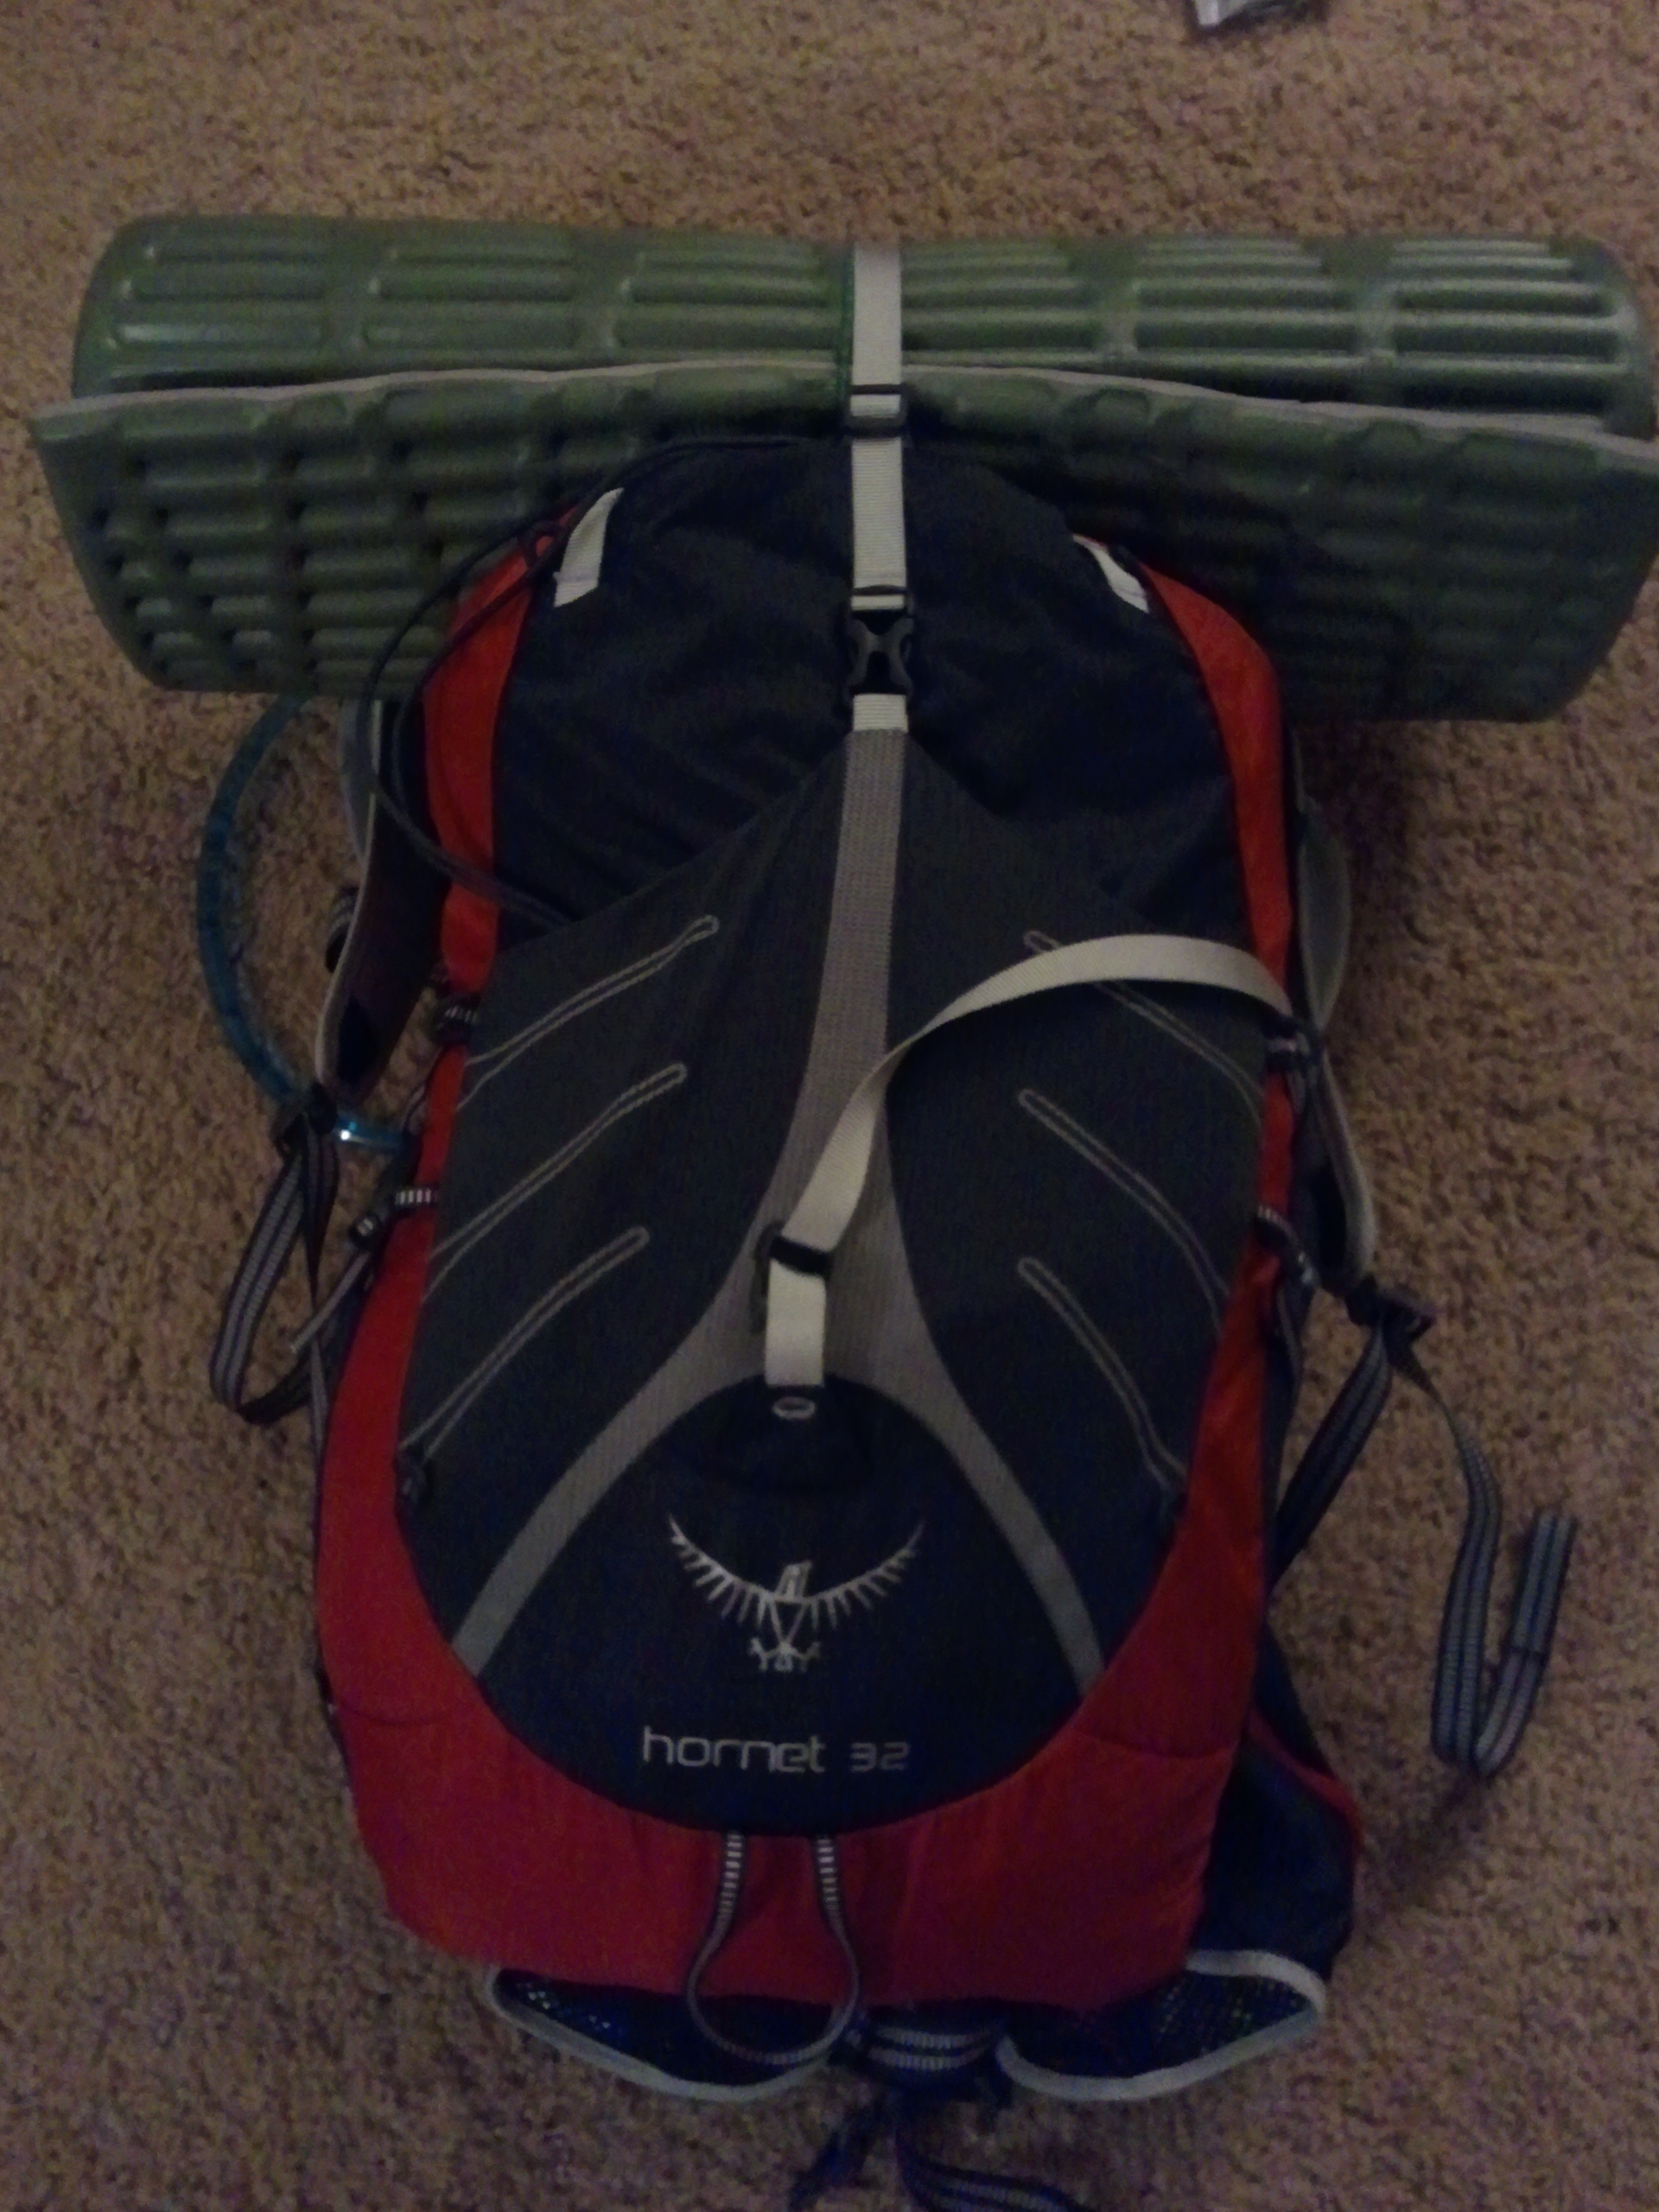 coming in at 1lb 4oz this is one of the lightest packs on the market this is a huge downsize from my osprey exos 58 liter pack and also a huge weight